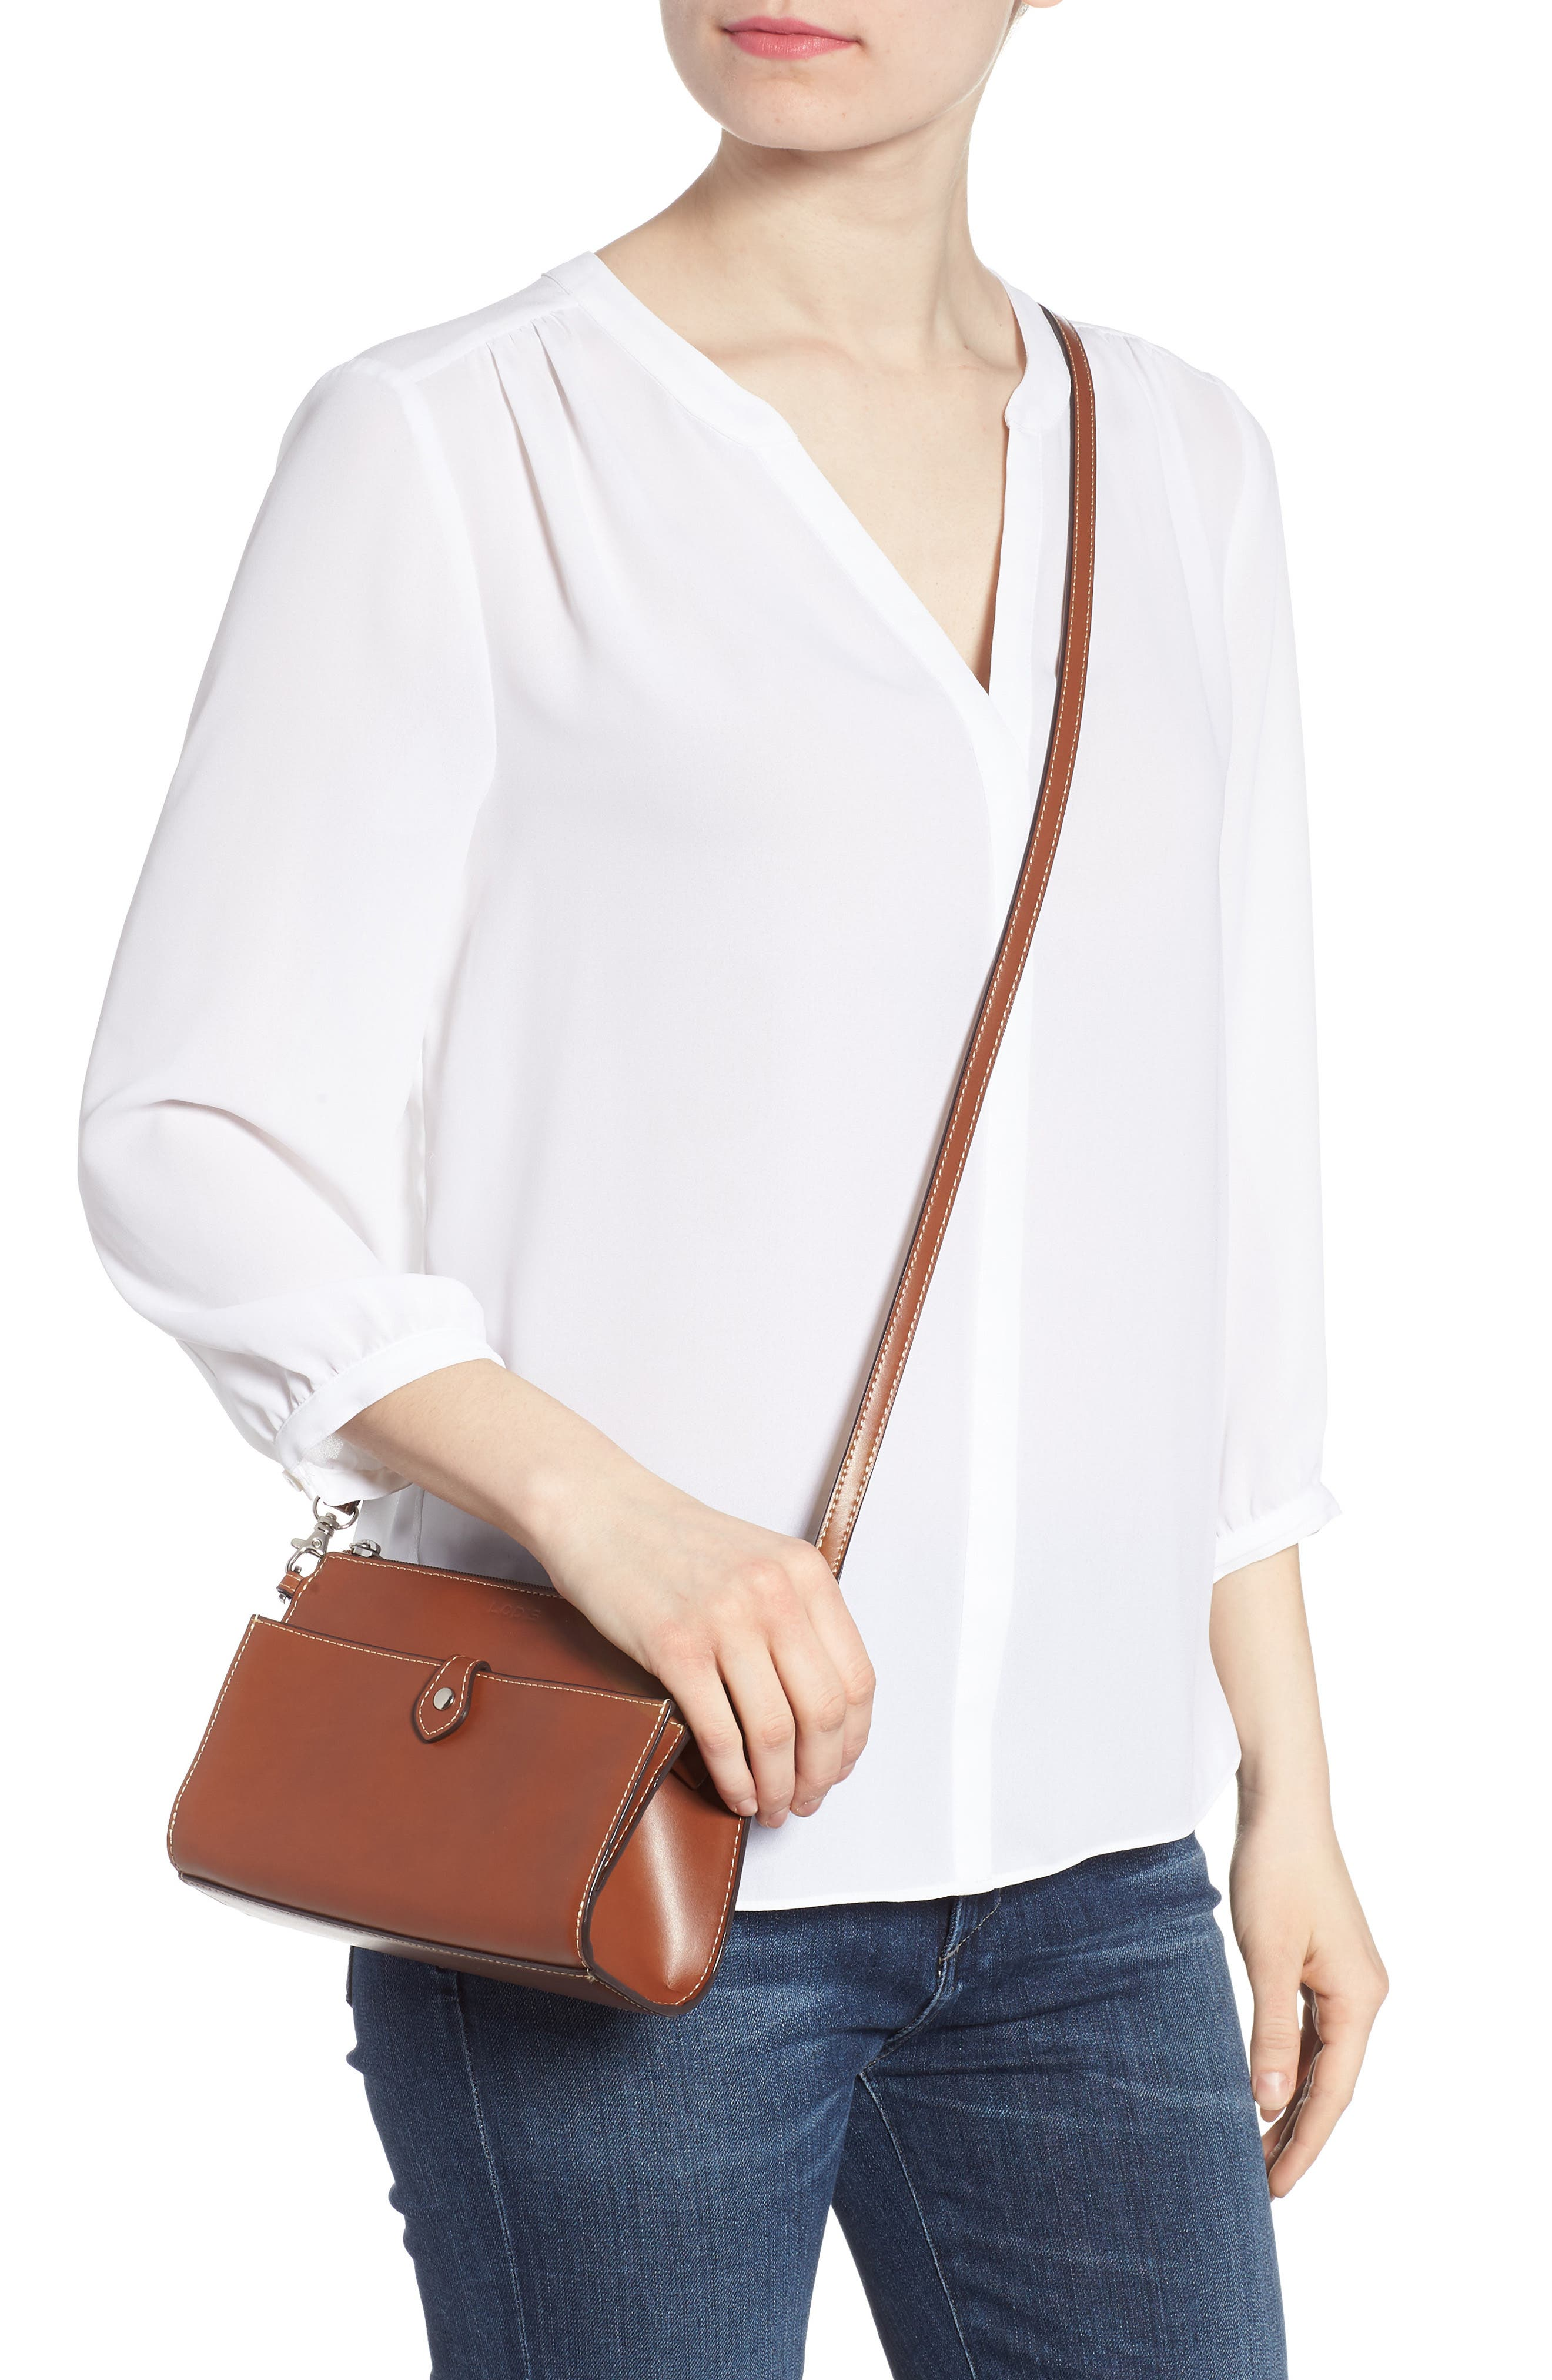 Audrey Under Lock & Key Vicky Convertible Leather Crossbody Bag,                             Alternate thumbnail 2, color,                             Sequoia/ Papaya